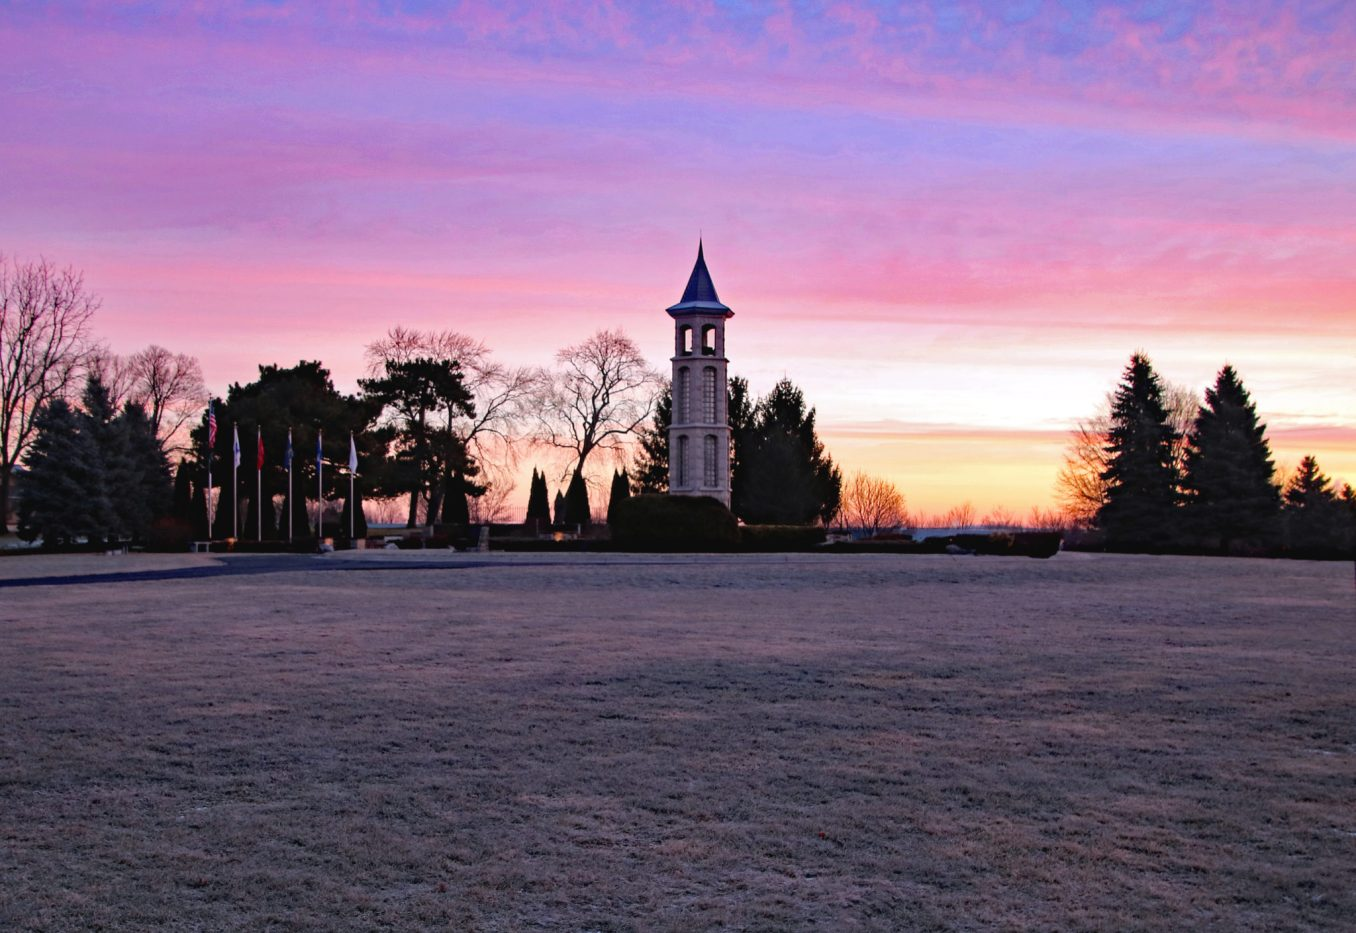 Carillon Bell Tower at sunrise